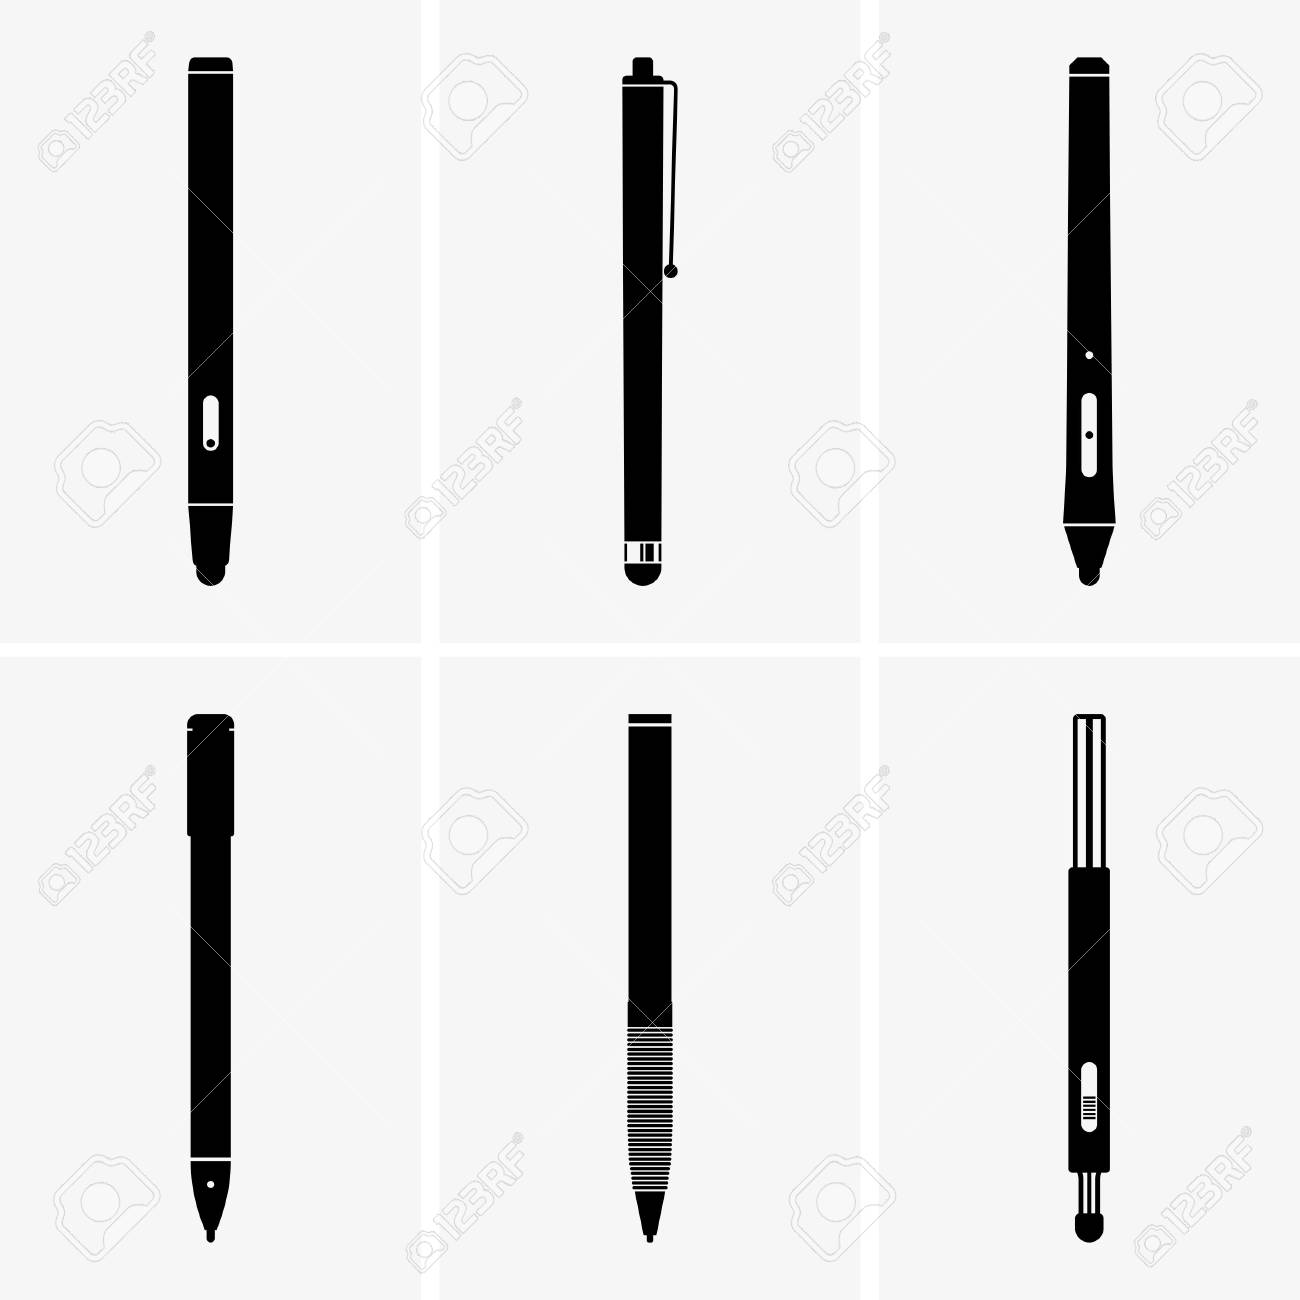 stylus pens royalty free cliparts vectors and stock illustration